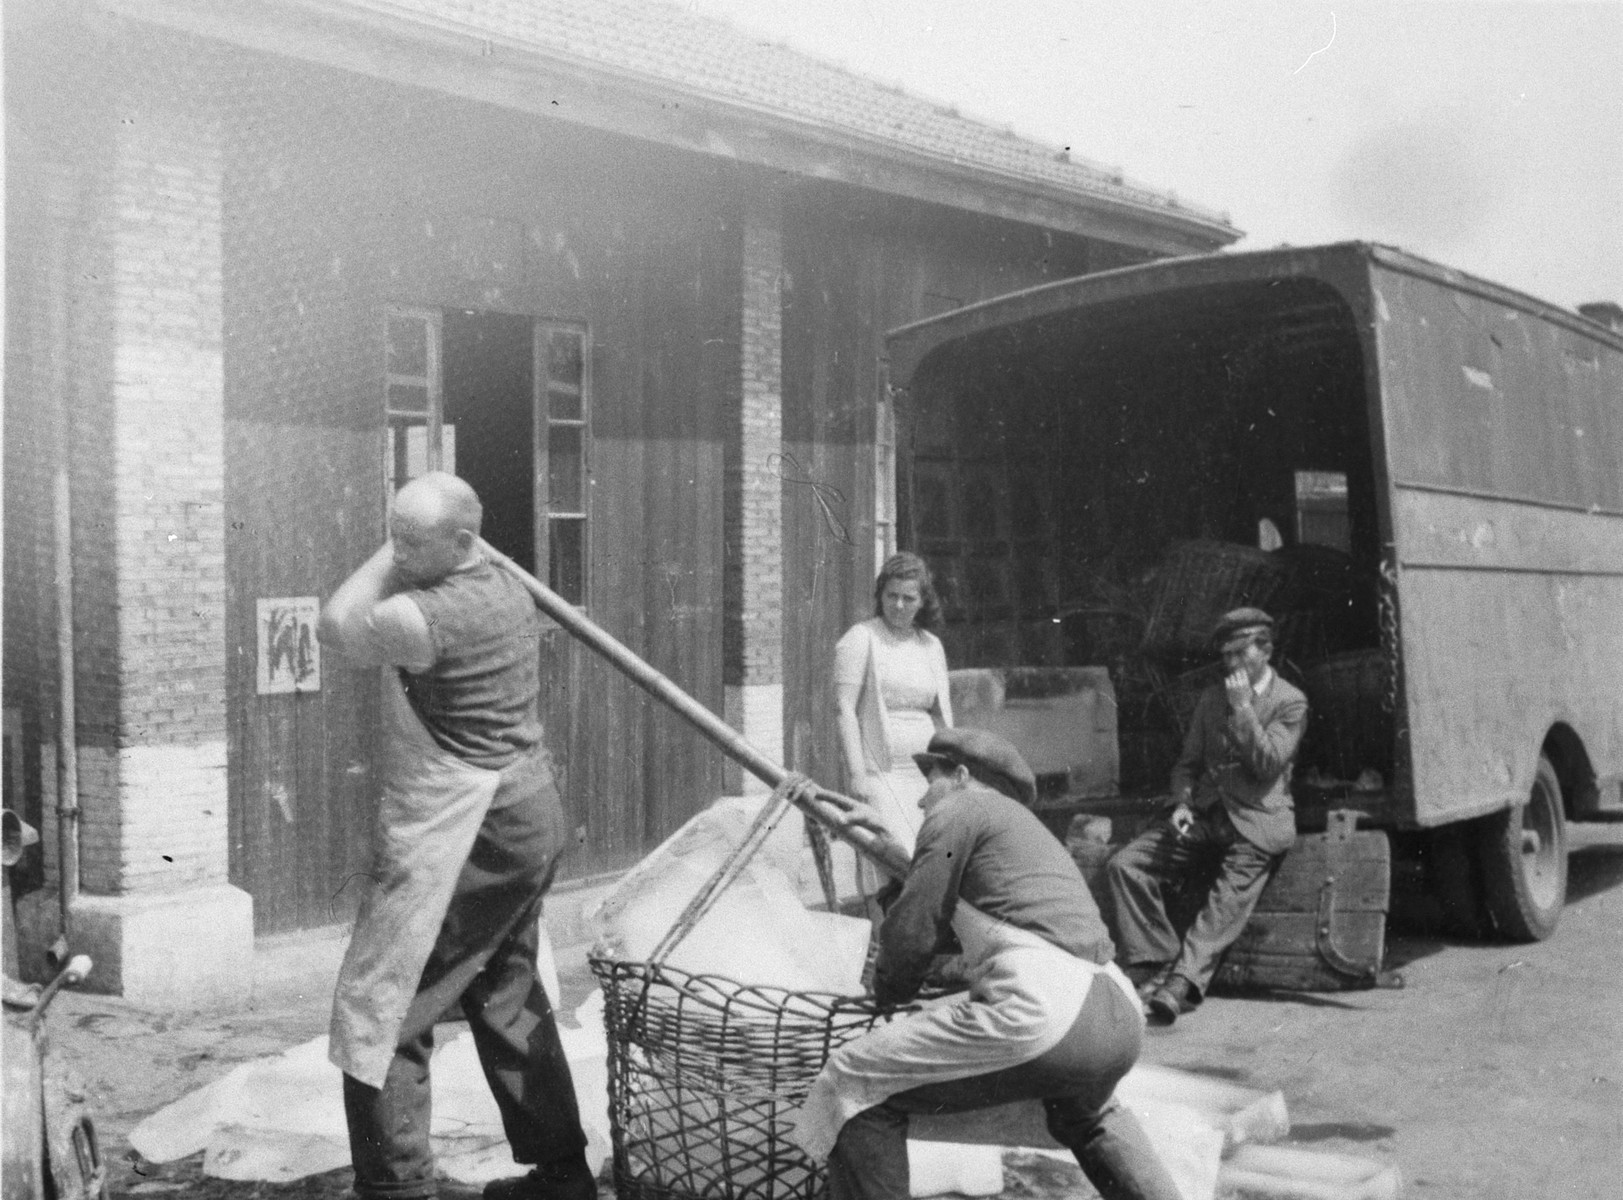 Two men wearing aprons haul a heavy basket that has been unloaded from a nearby truck in Shanghai.